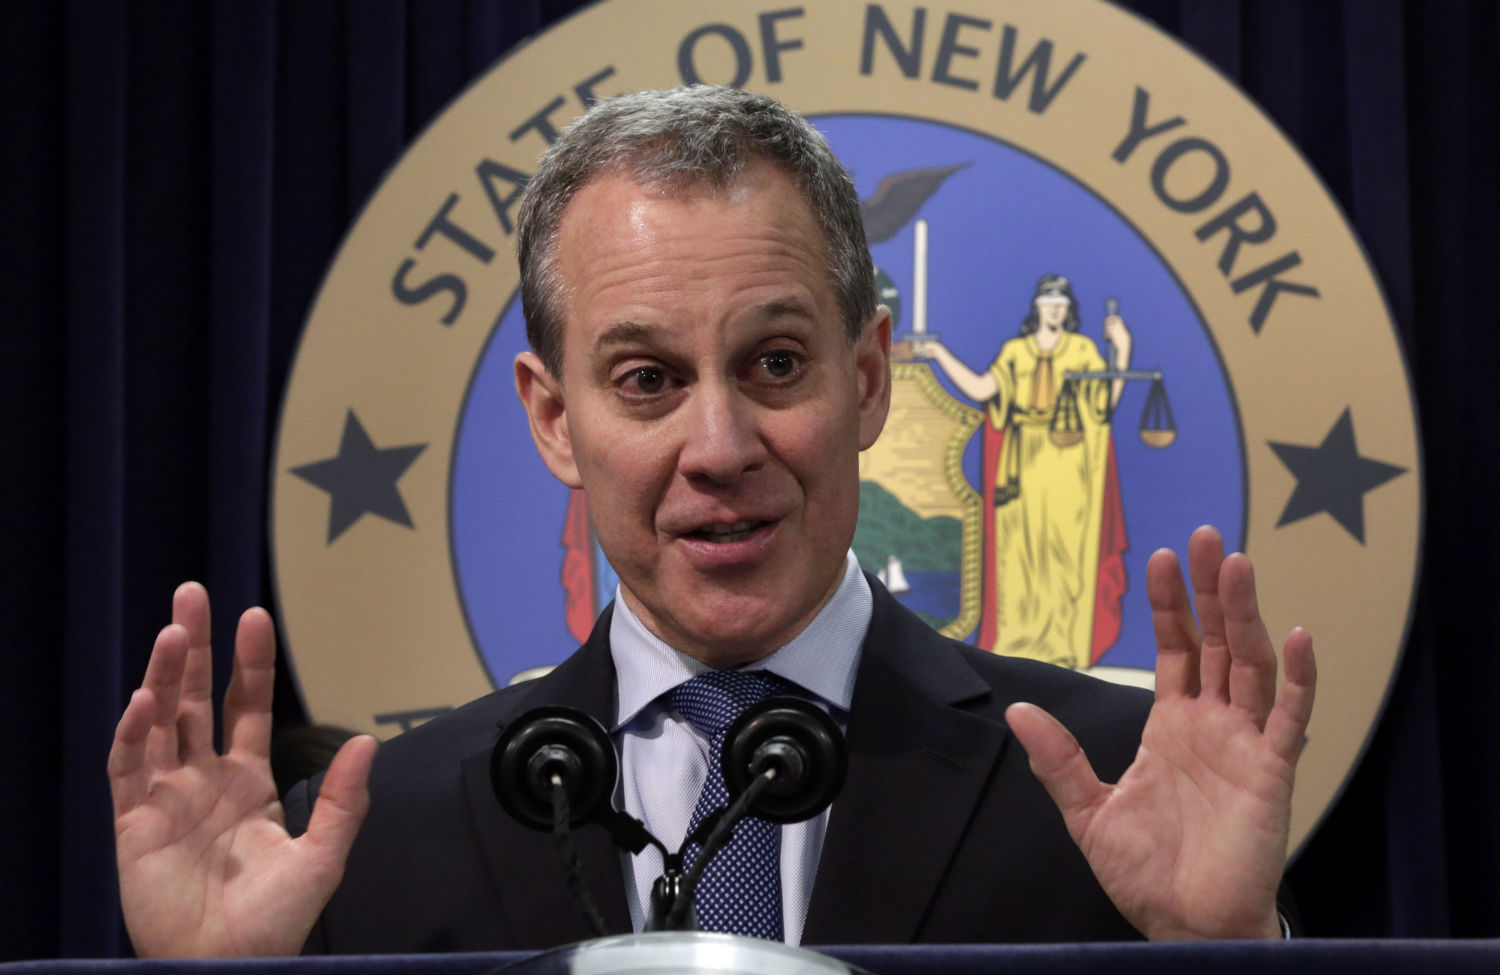 THAT WAS QUICK! DEMOCRAT WAR ON WOMEN CONTINUES: BREAKING: Democrat NY Attorney General Eric Schneiderman Resigns Amid Major Sexual Assault and Racist Allegations